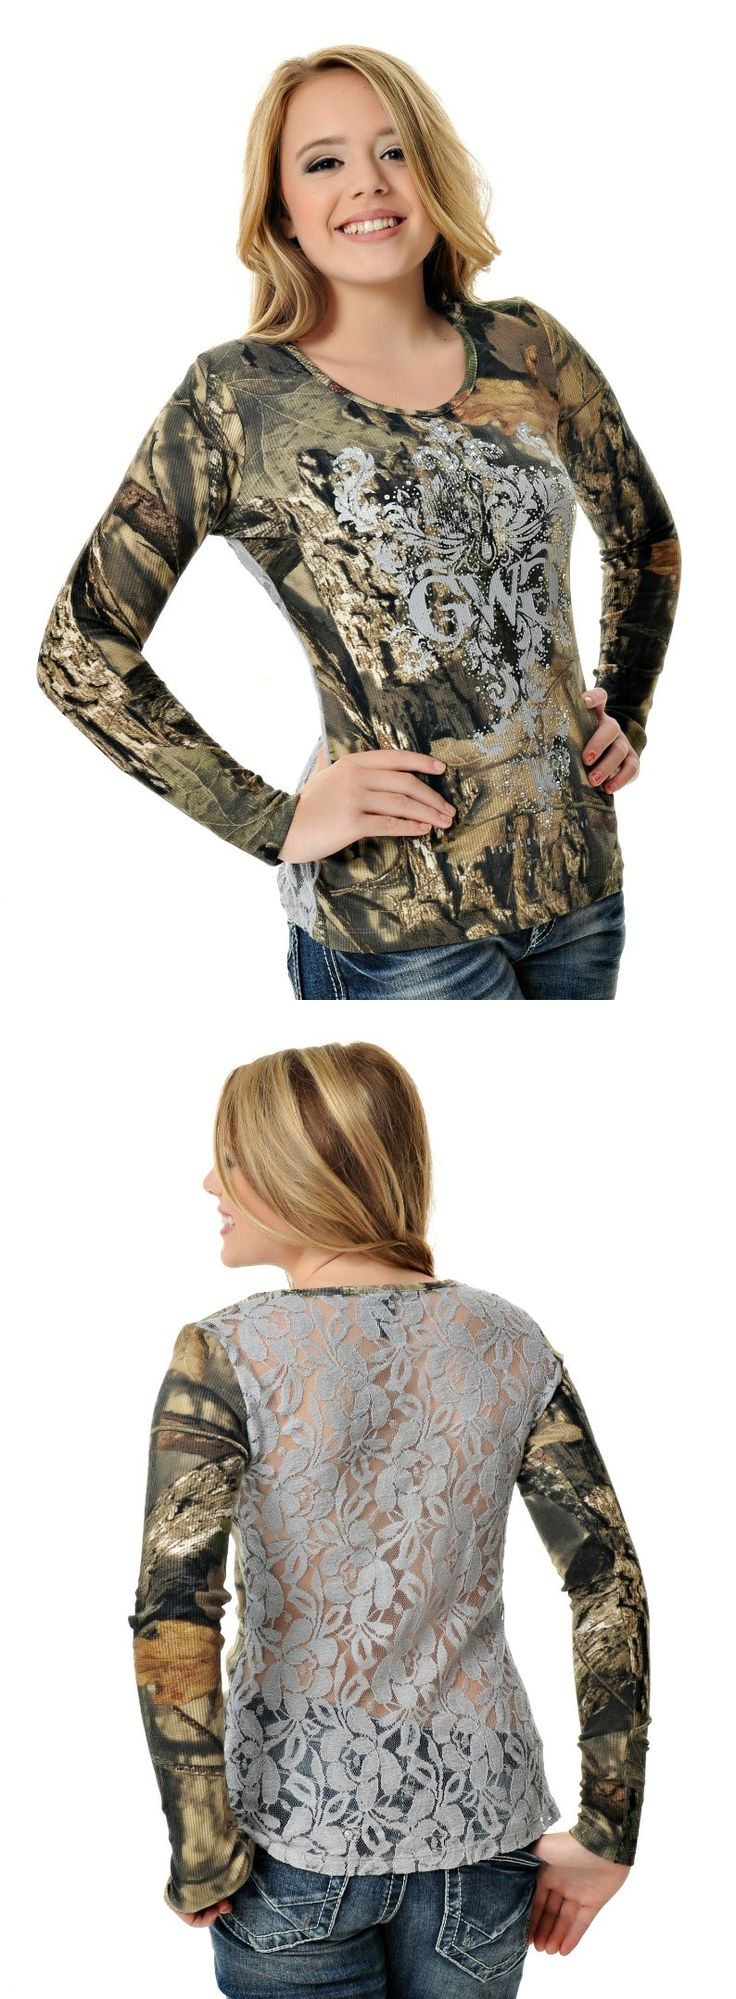 1000+ ideas about Cute Country Clothes on Pinterest ...